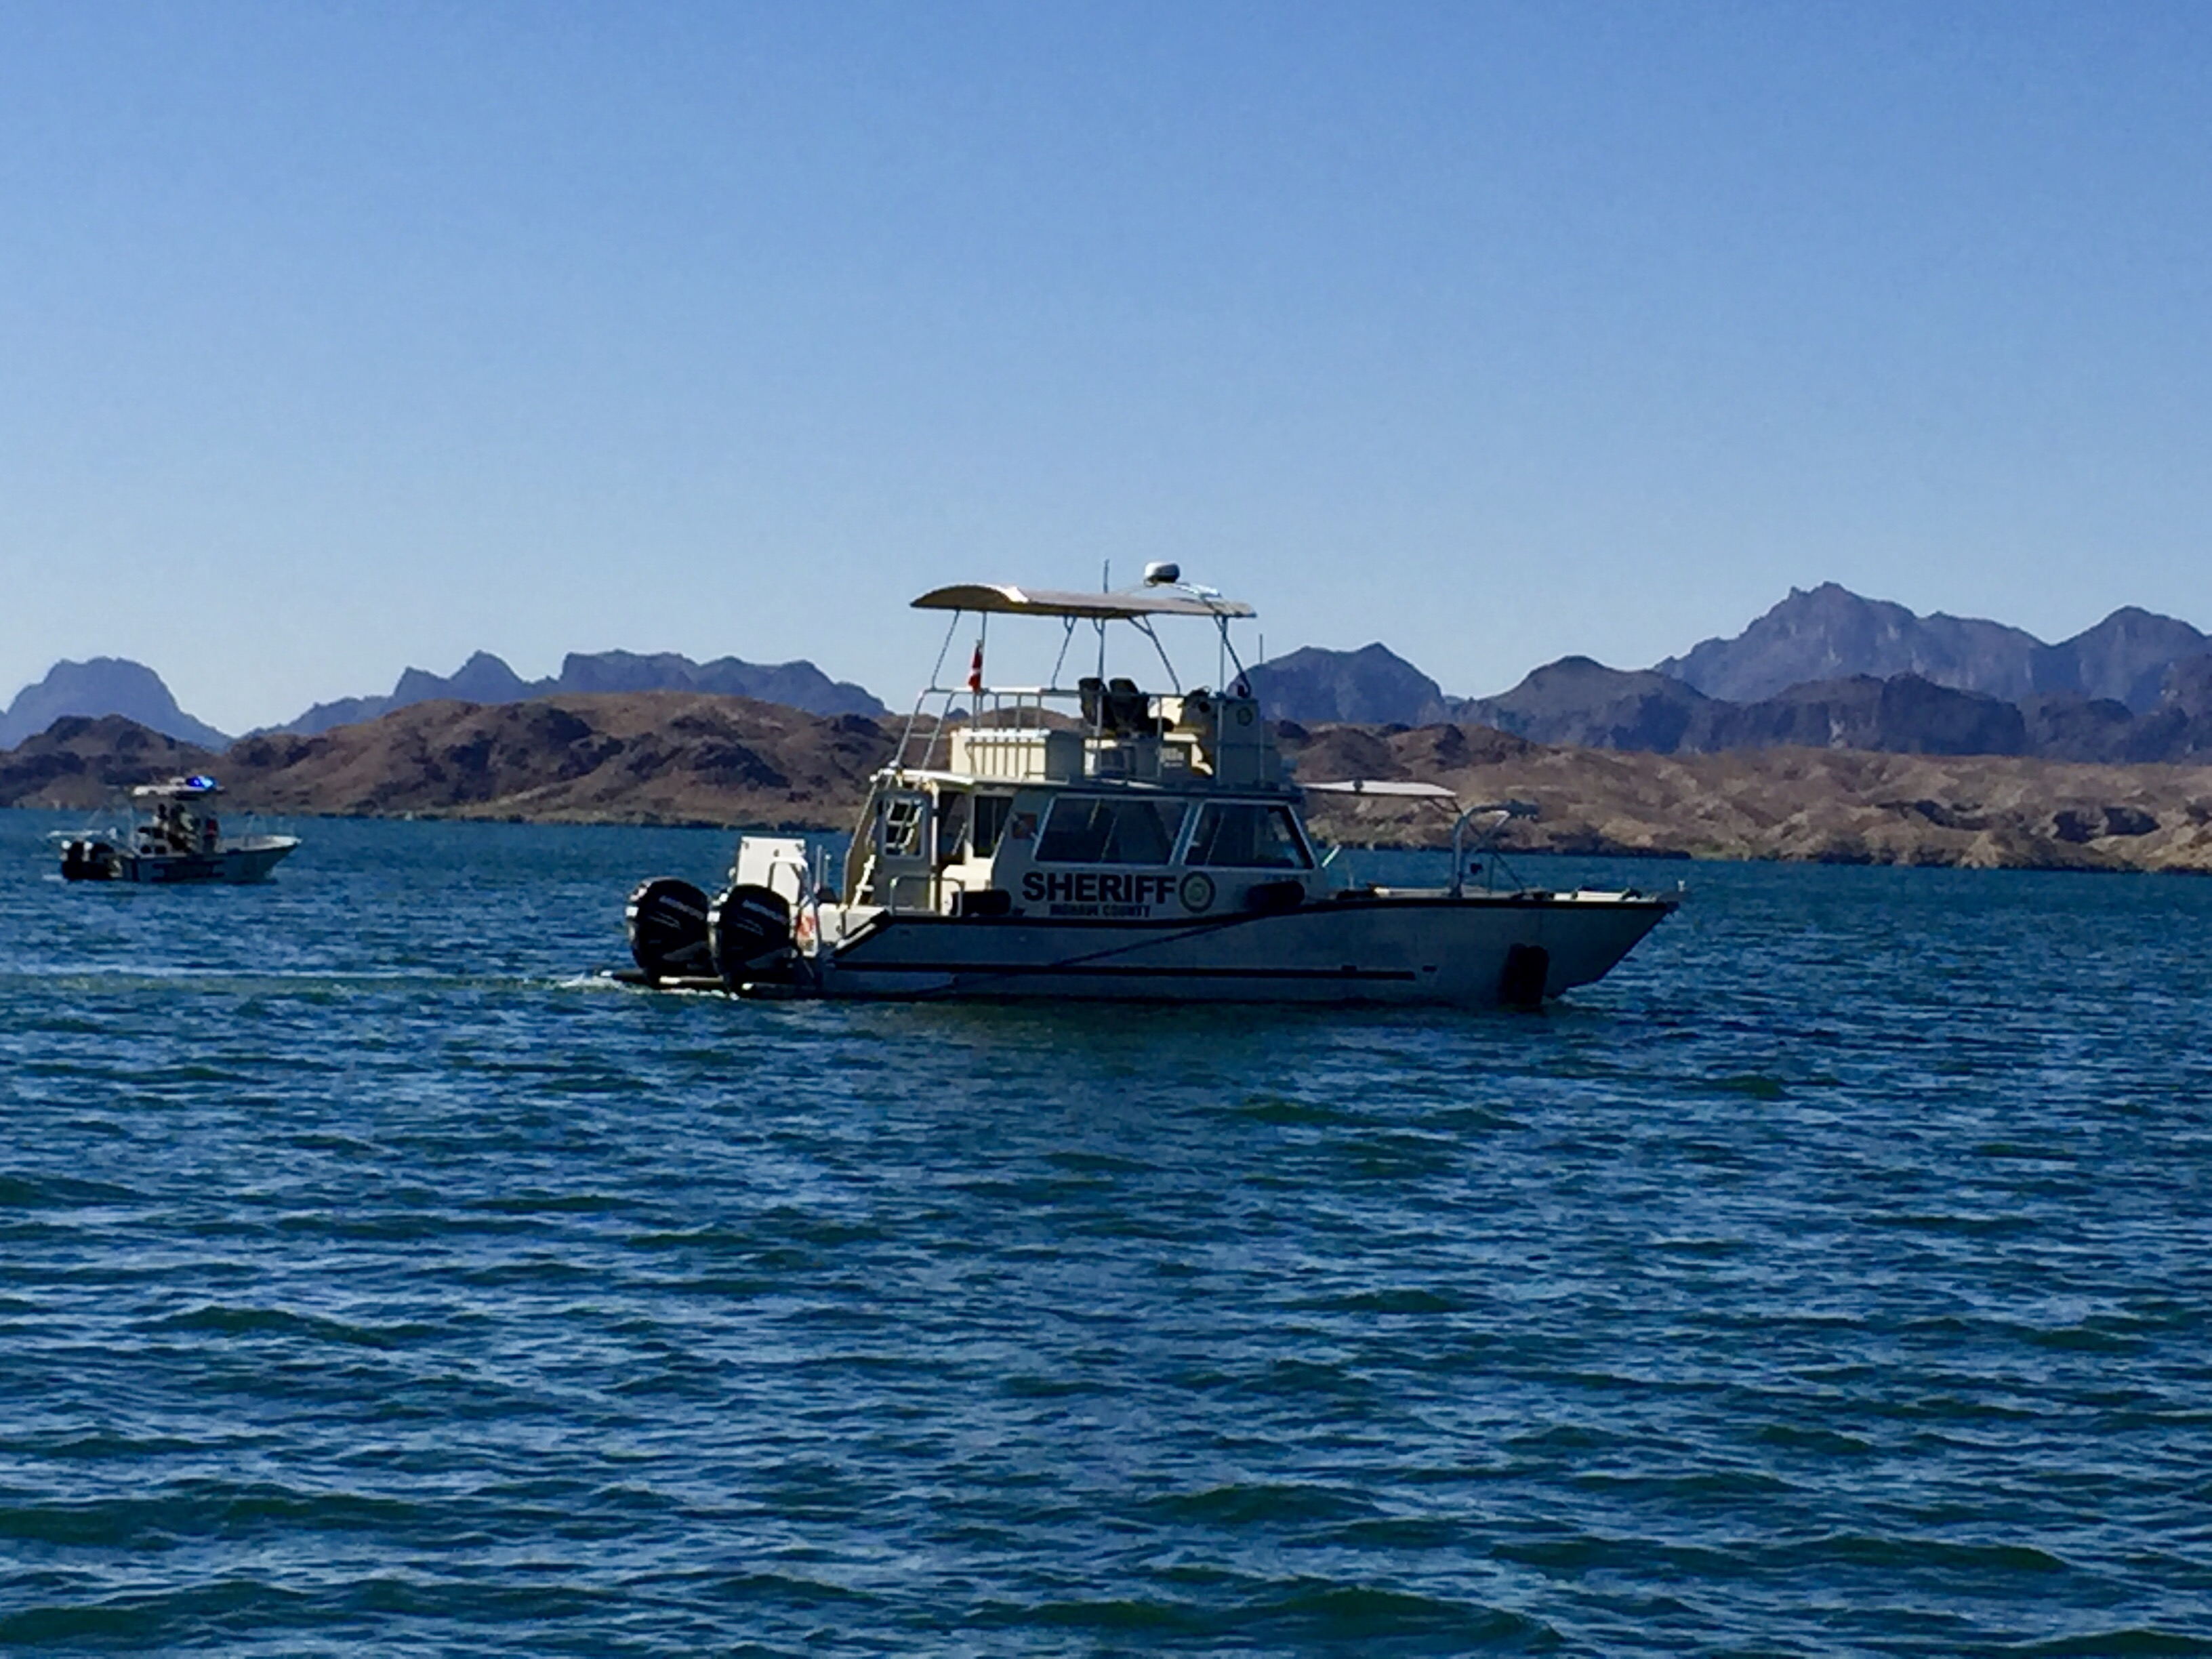 MCSO Boating Officers searching for missing female subject after a boat accident in Lake Havasu on June 10. (MCSO)